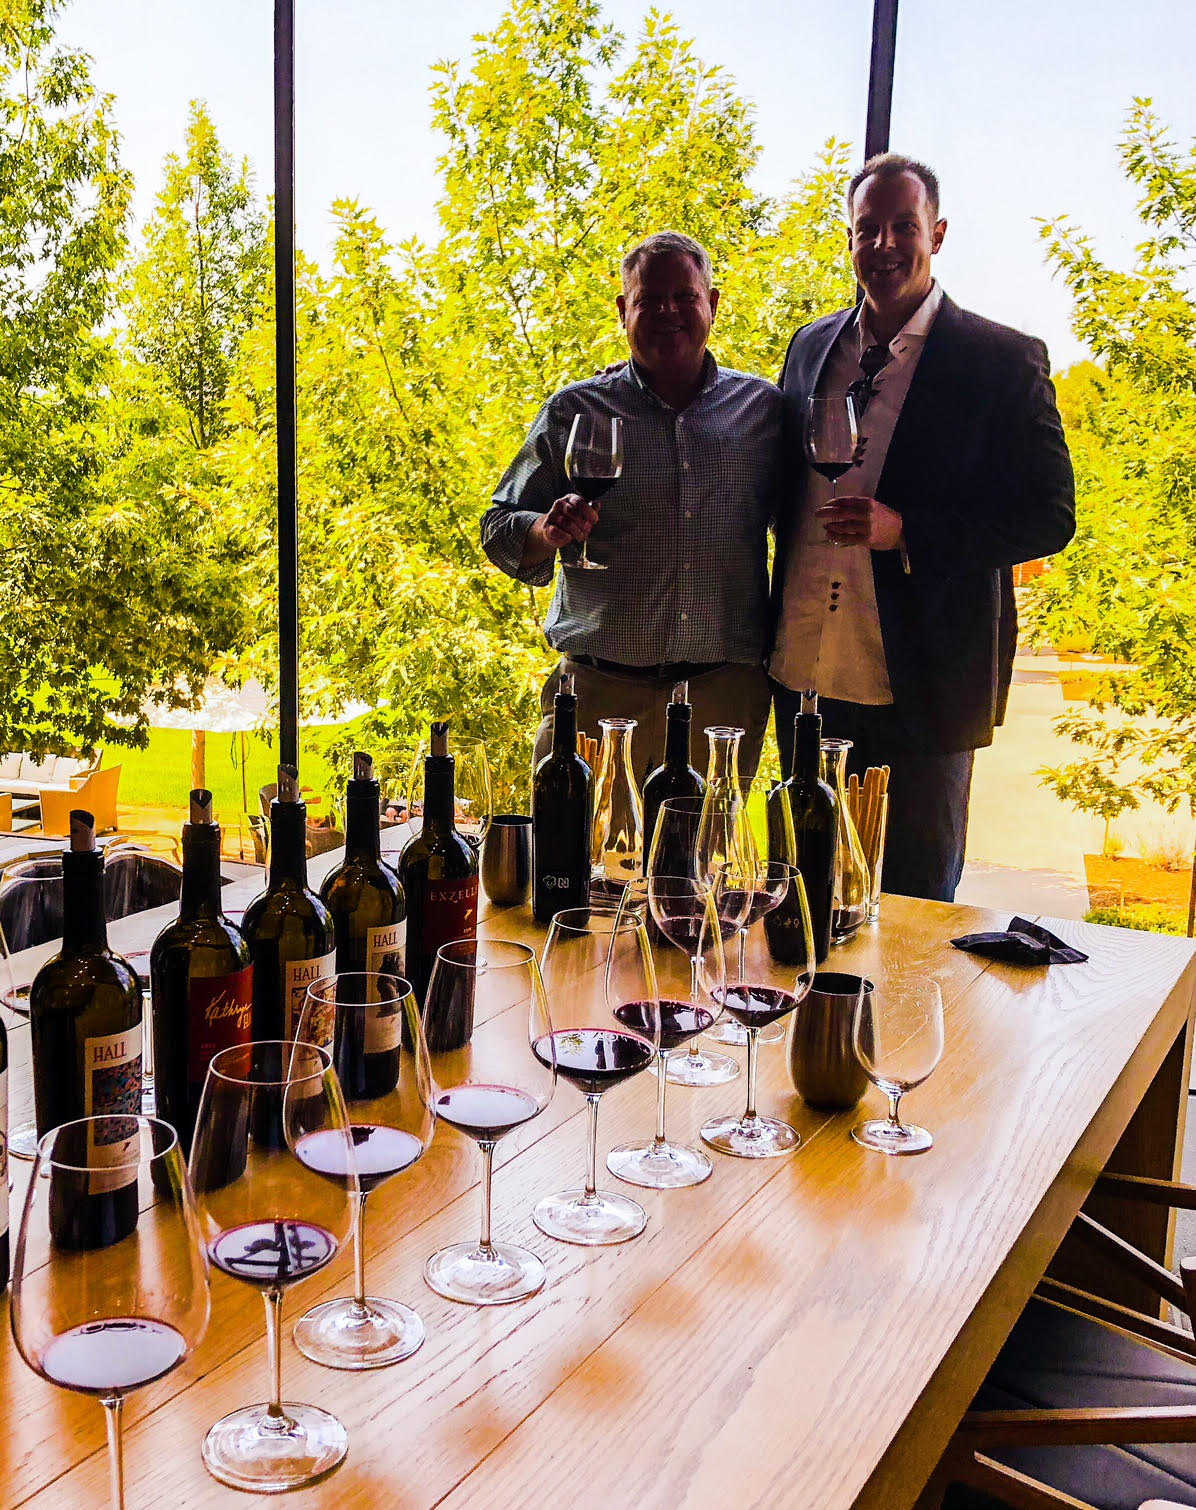 It was a fabulous day checking out the gorgeous new lineup of HALL wines with HALL CEO and former HALL winemaker, Mike Reynolds.